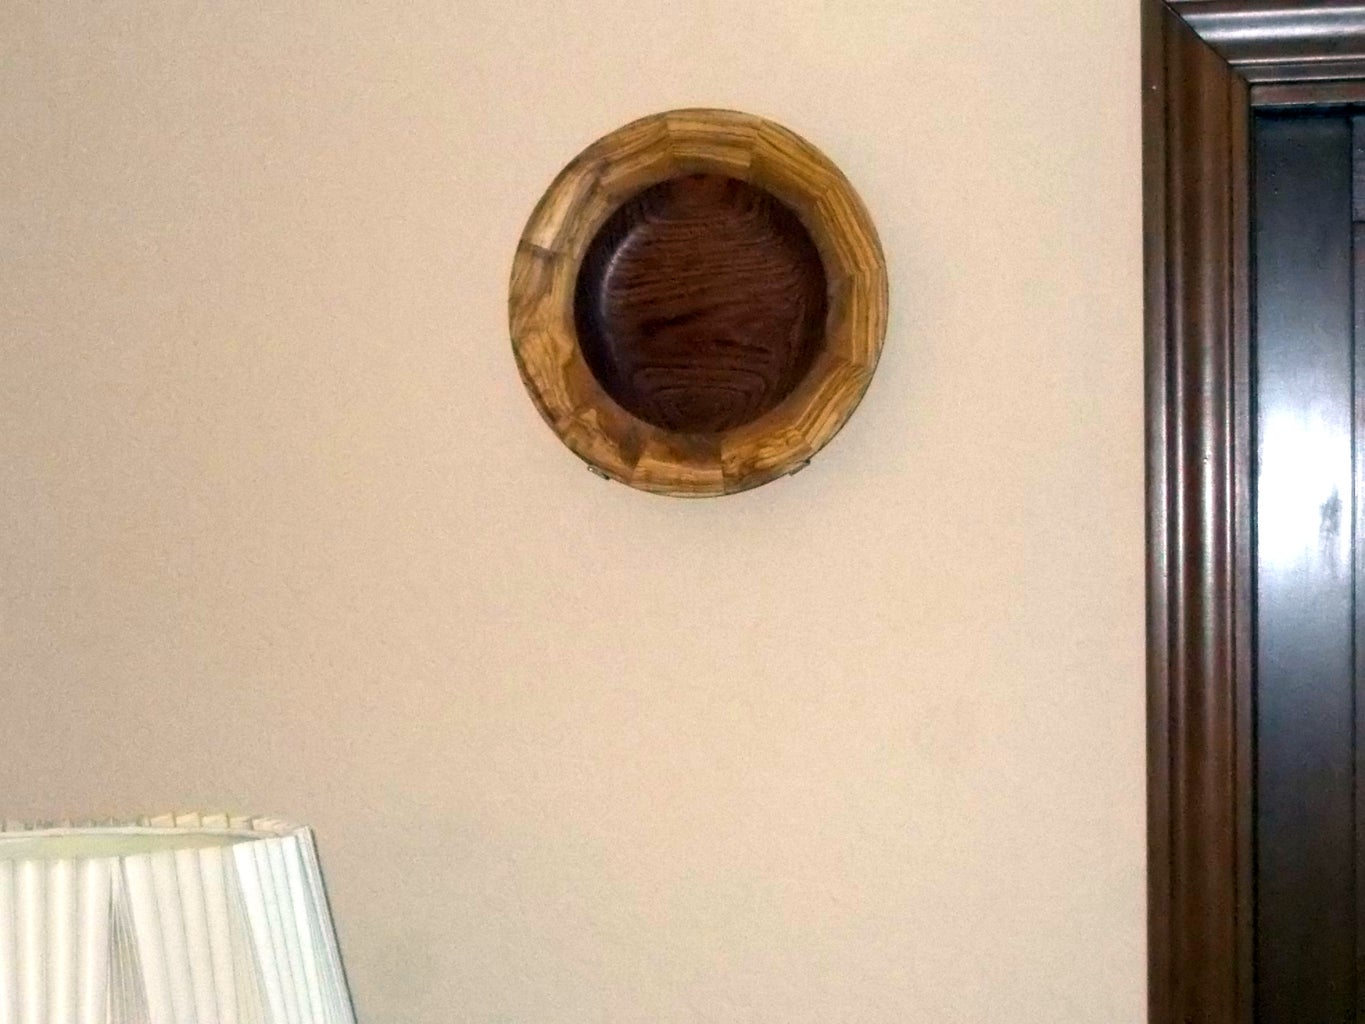 Plate Holder for the Wall